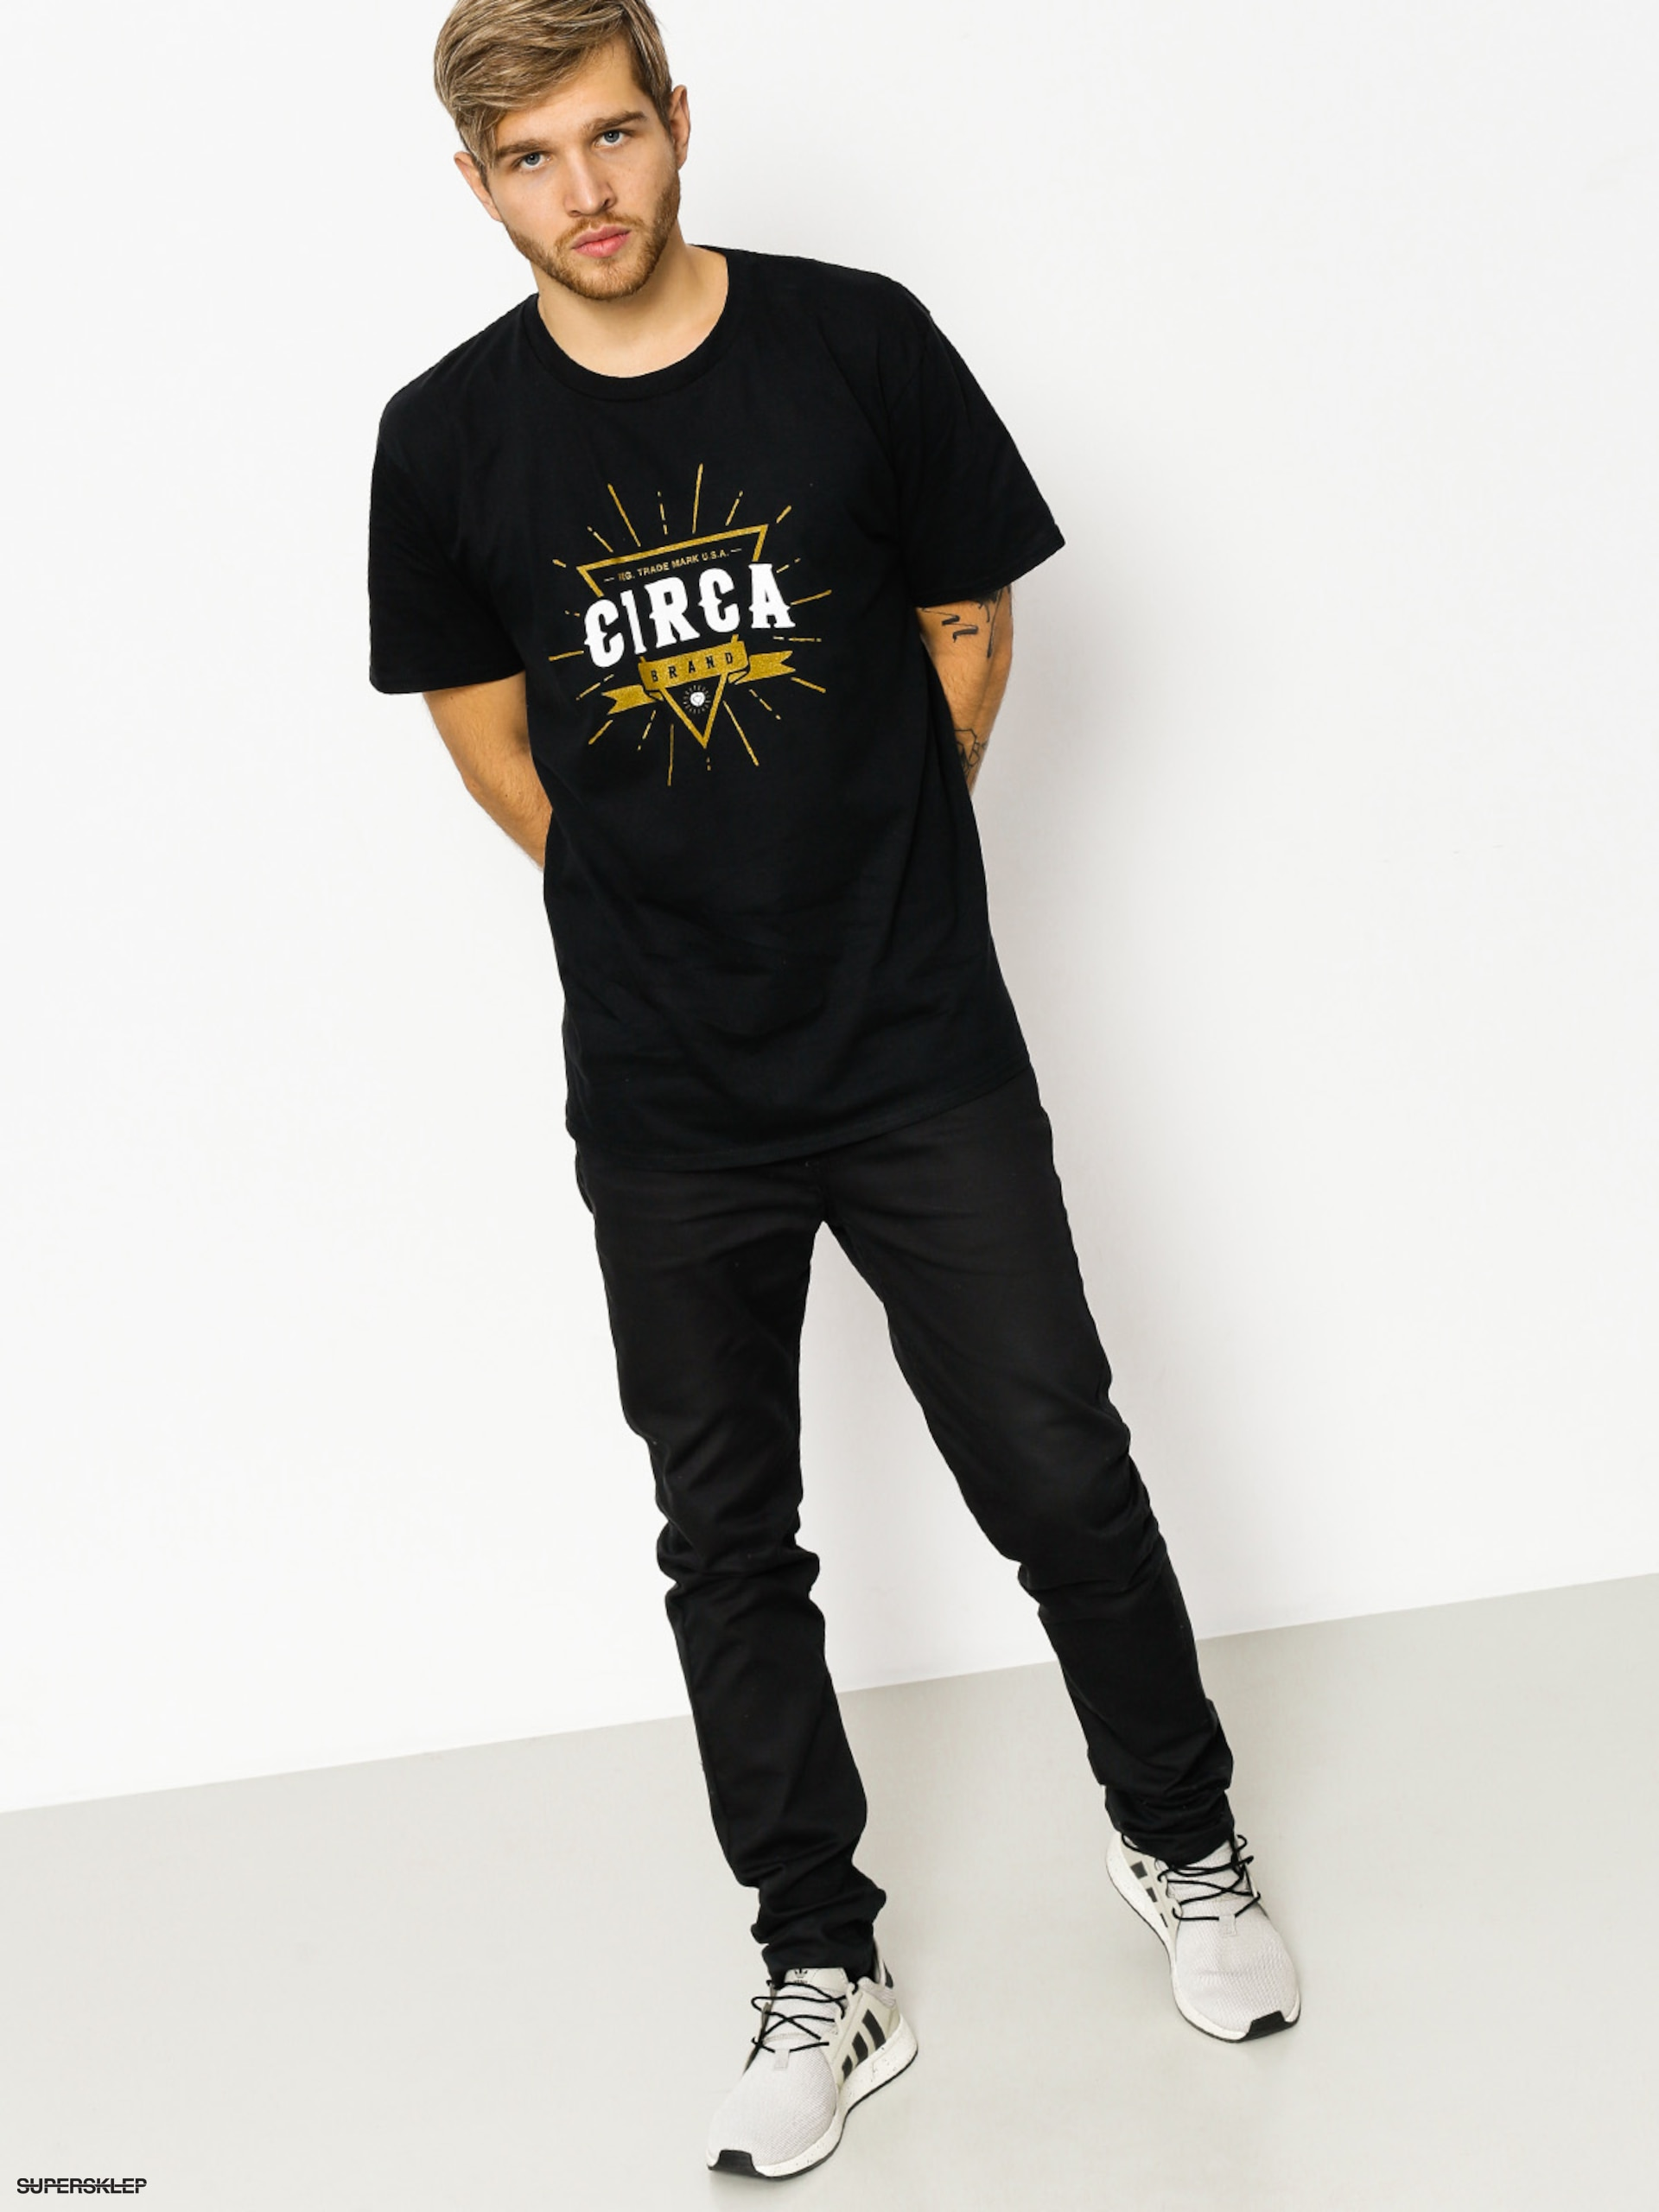 T-shirt Circa League (black)